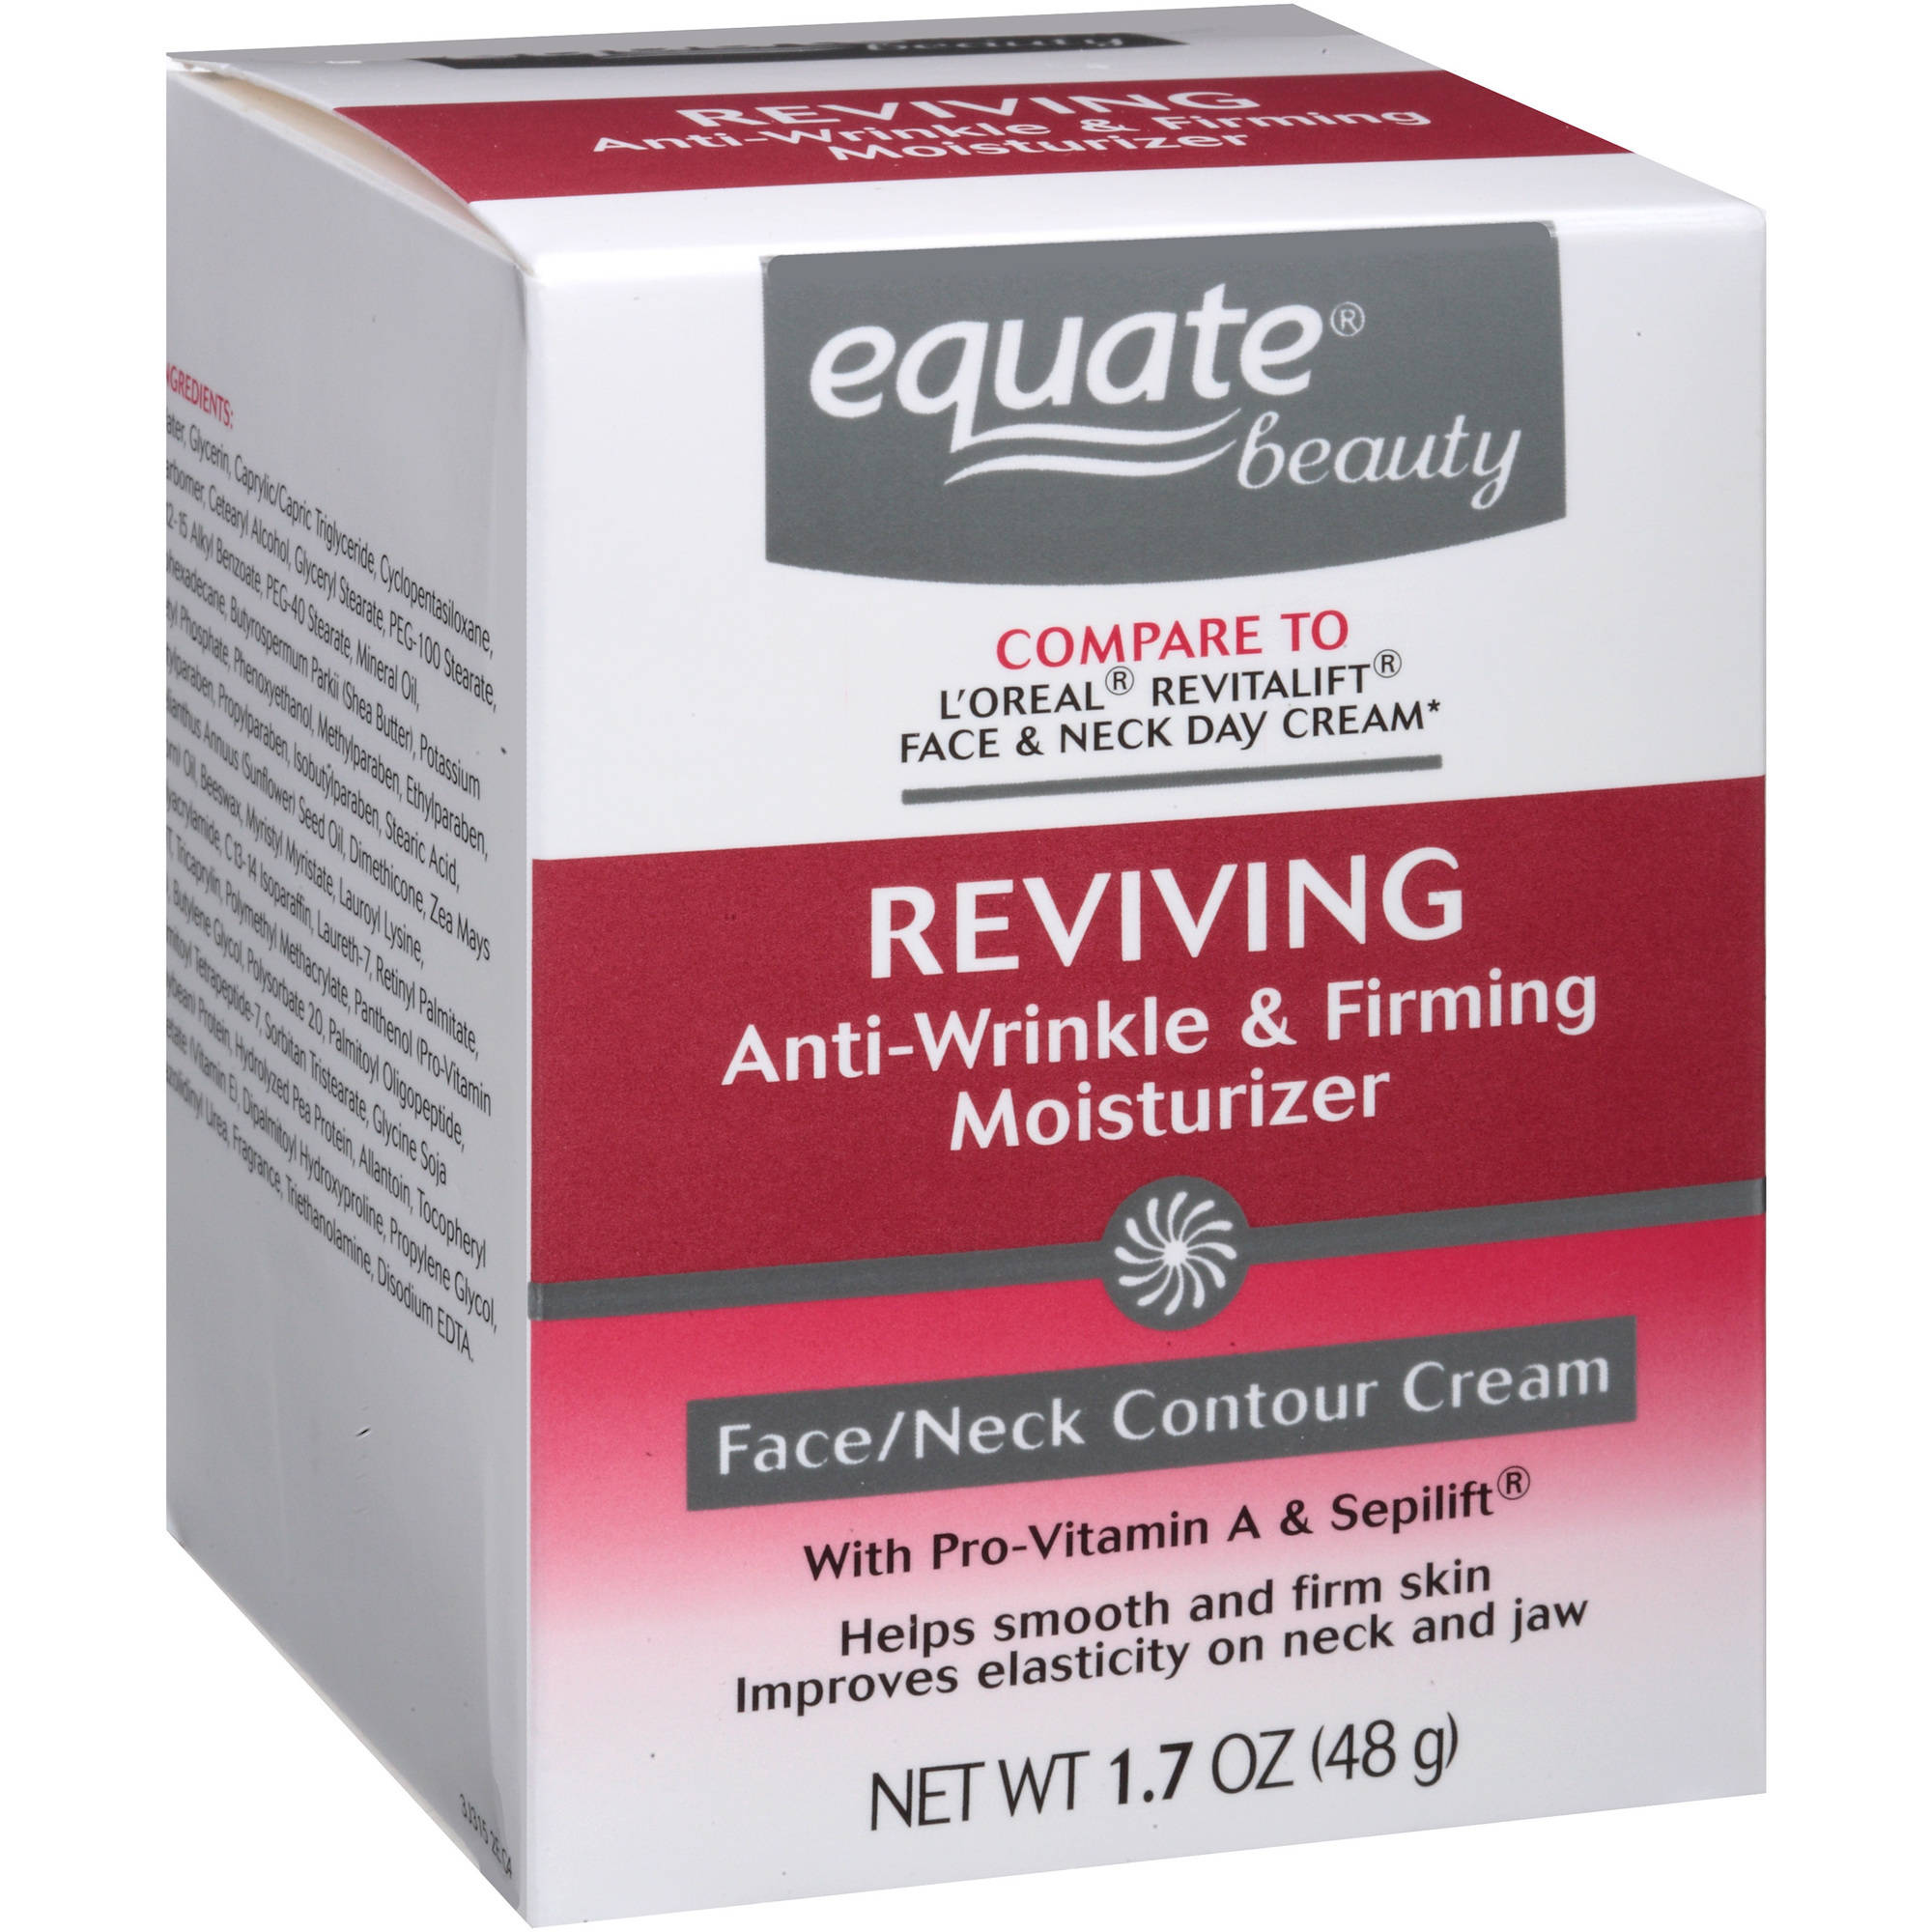 Equate Beauty Reviving Anti-Wrinkle & Firming Moisturizer FAce/Neck Contour Cream, 1.7 oz